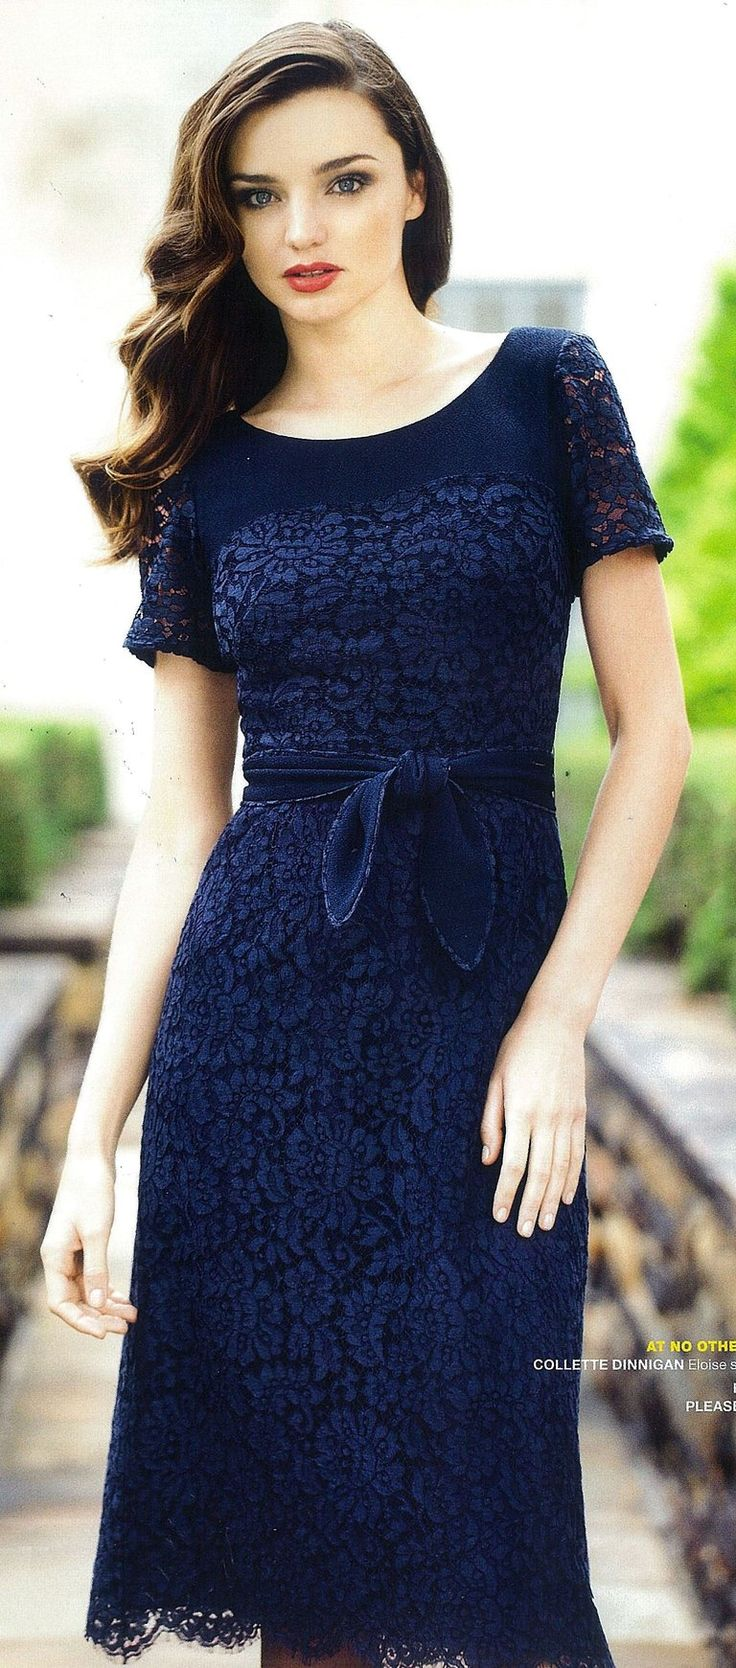 blue lace dress. #FashionandPassion #style #Fashion #women #Dresses